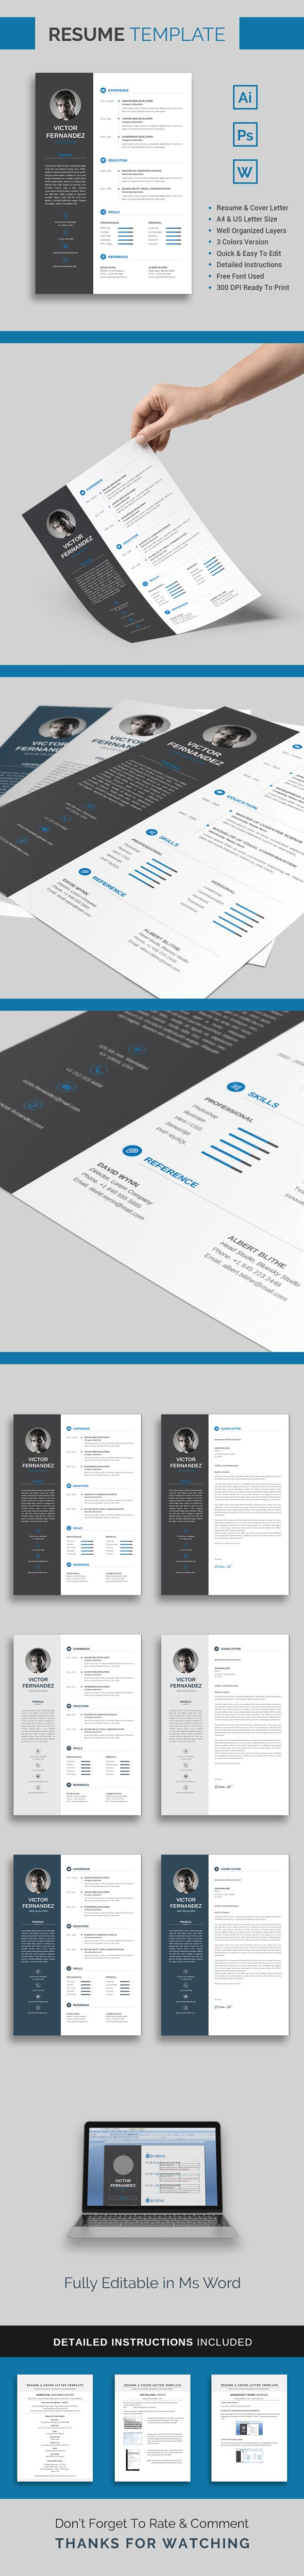 Resume Template Victor The 26 best